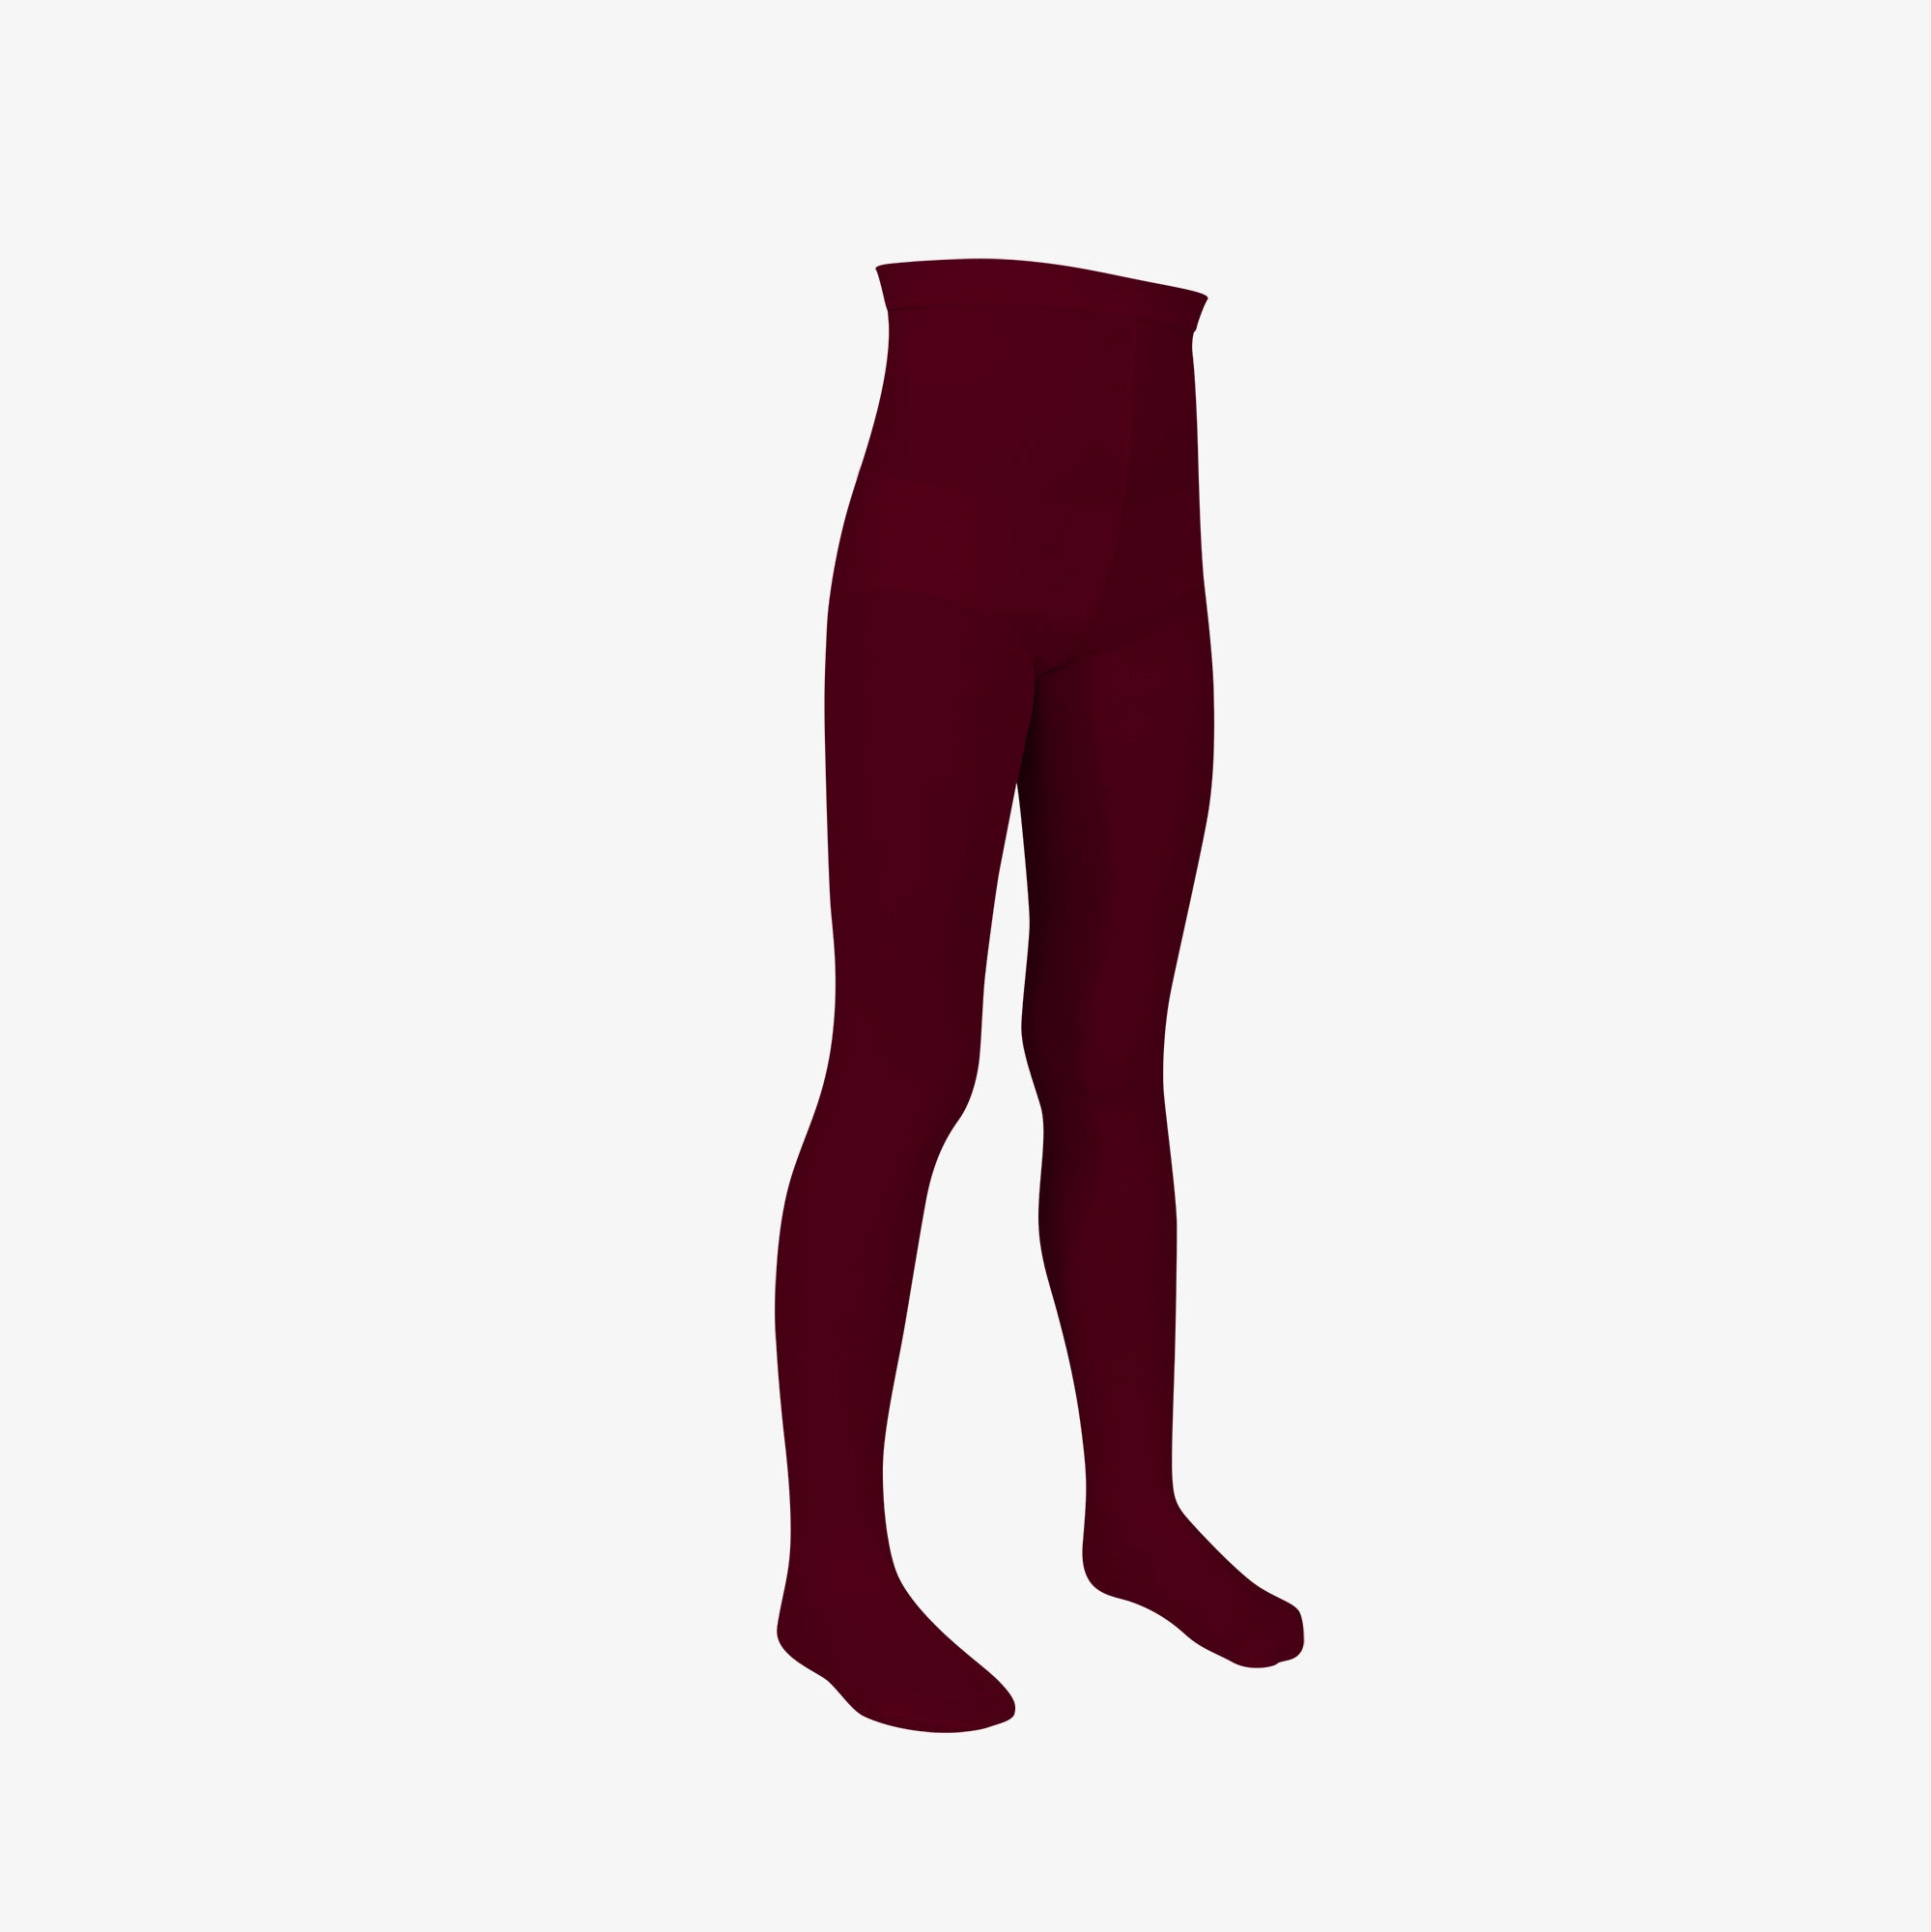 Tights - Style: 311 - Burgundy